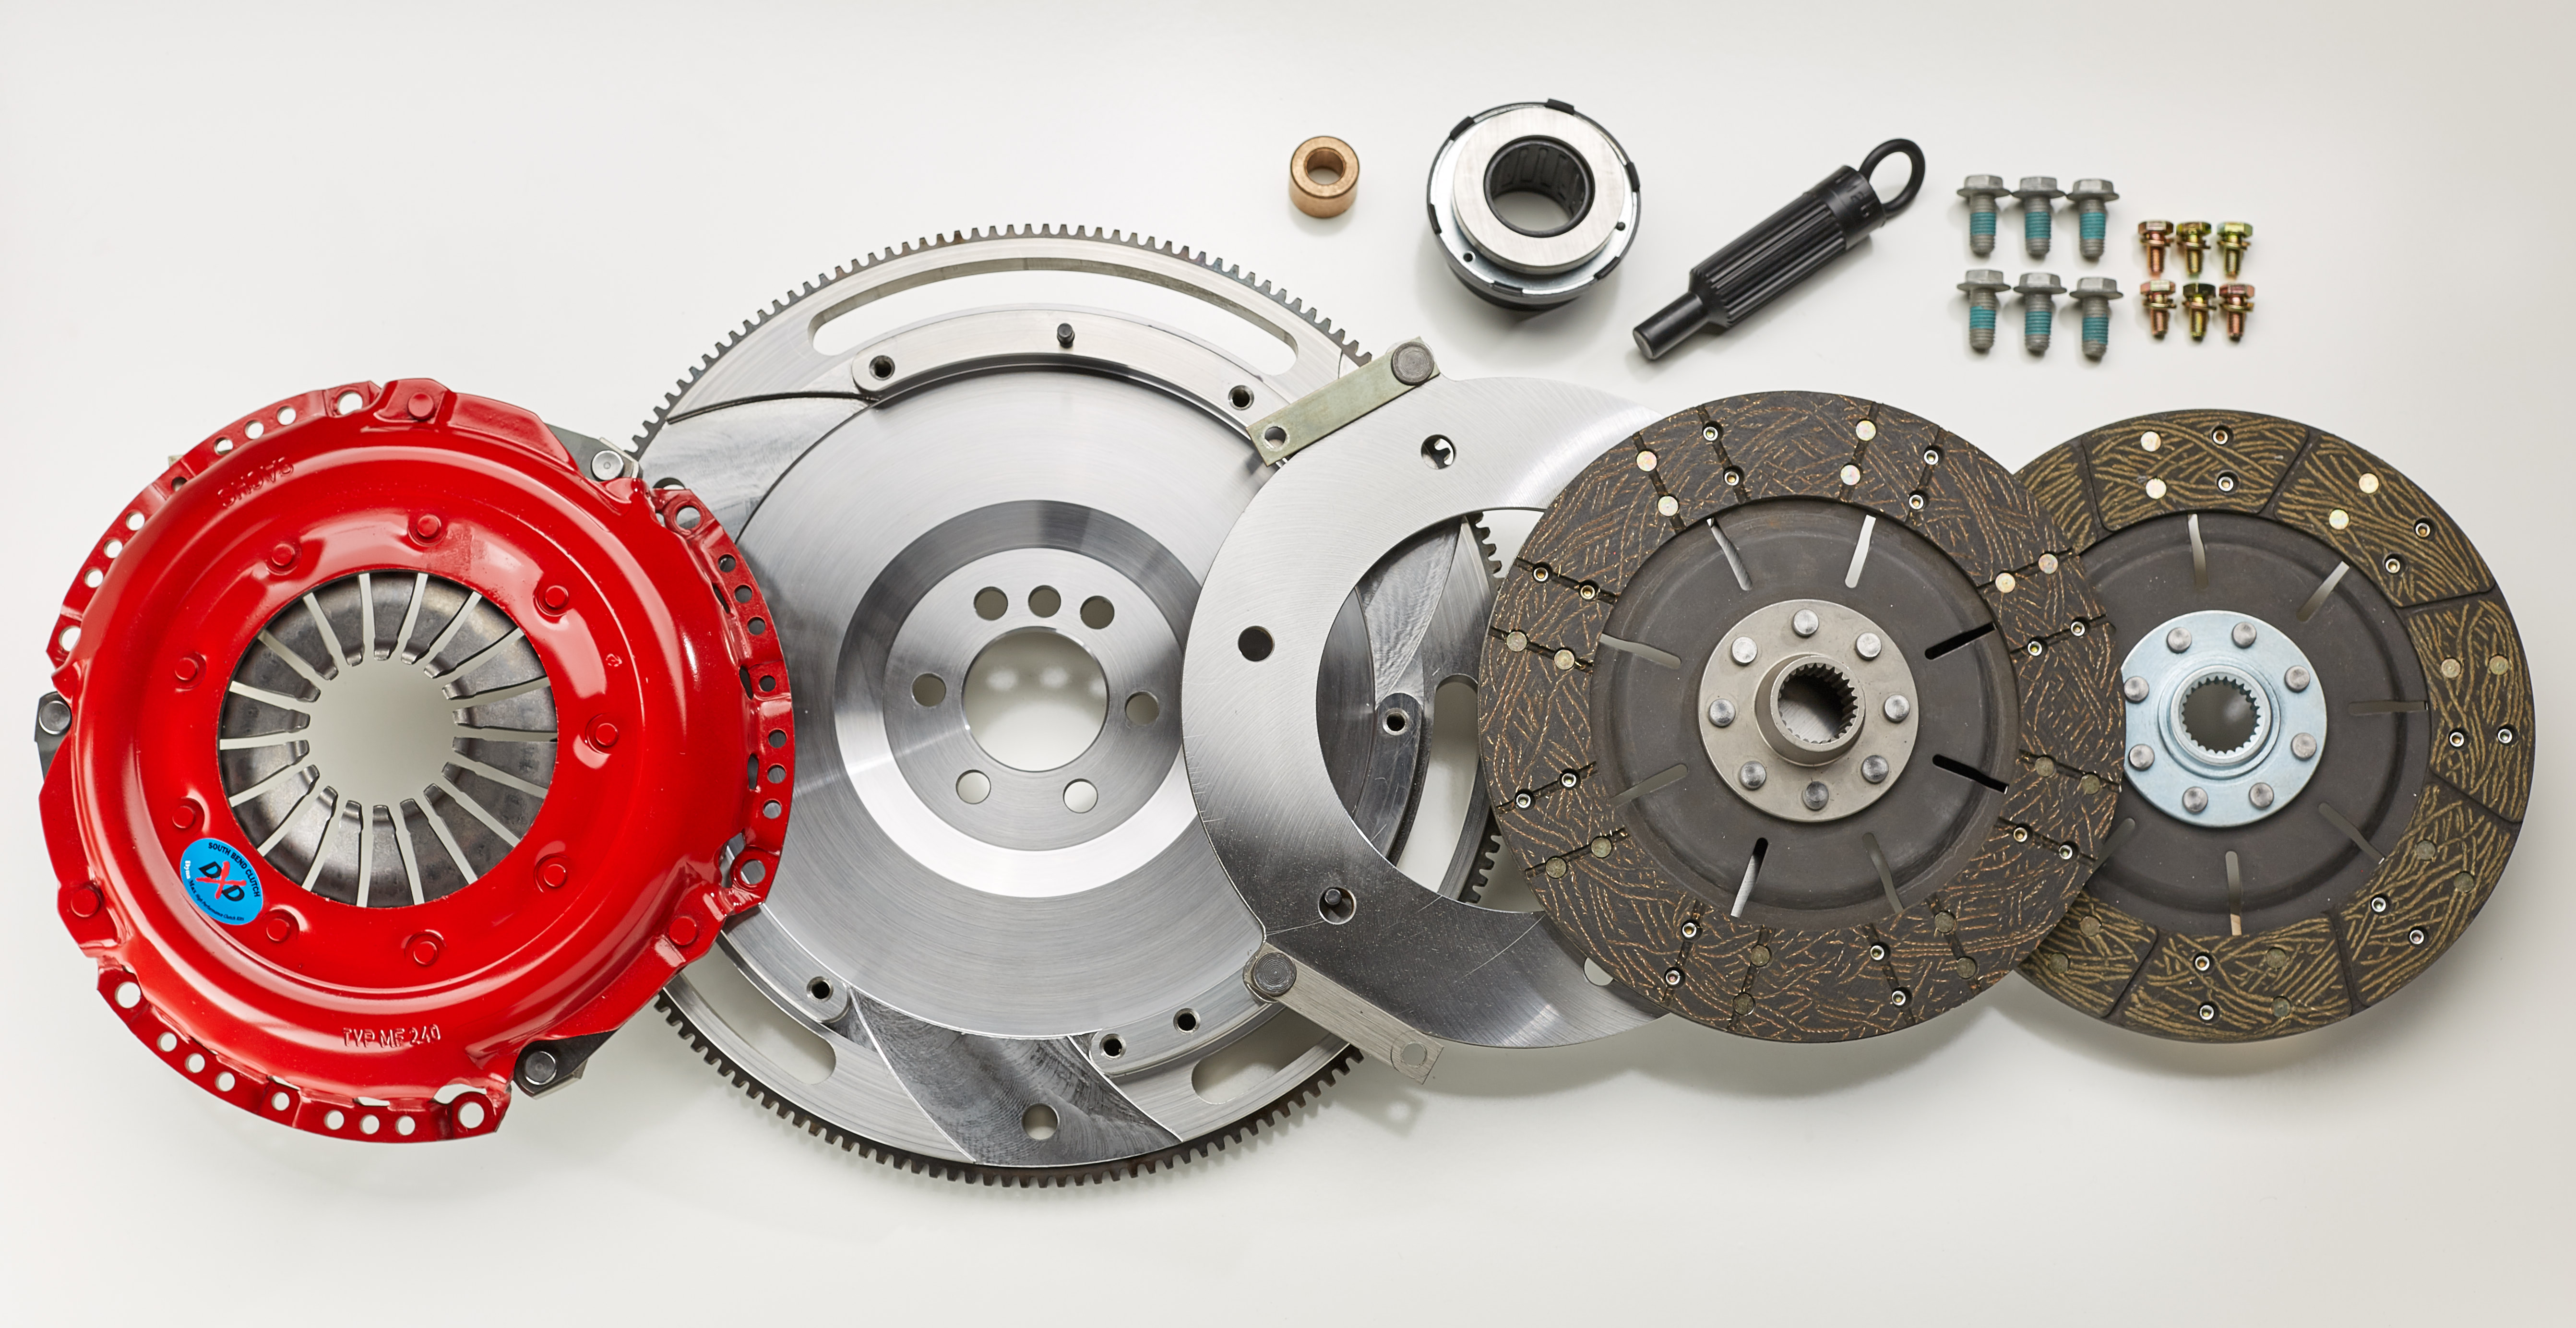 1999-2004 Ford Mustang V8 South Bend Clutch Dual Disc Kit w/ Flywheel (TR3250/TR3650 Trans)